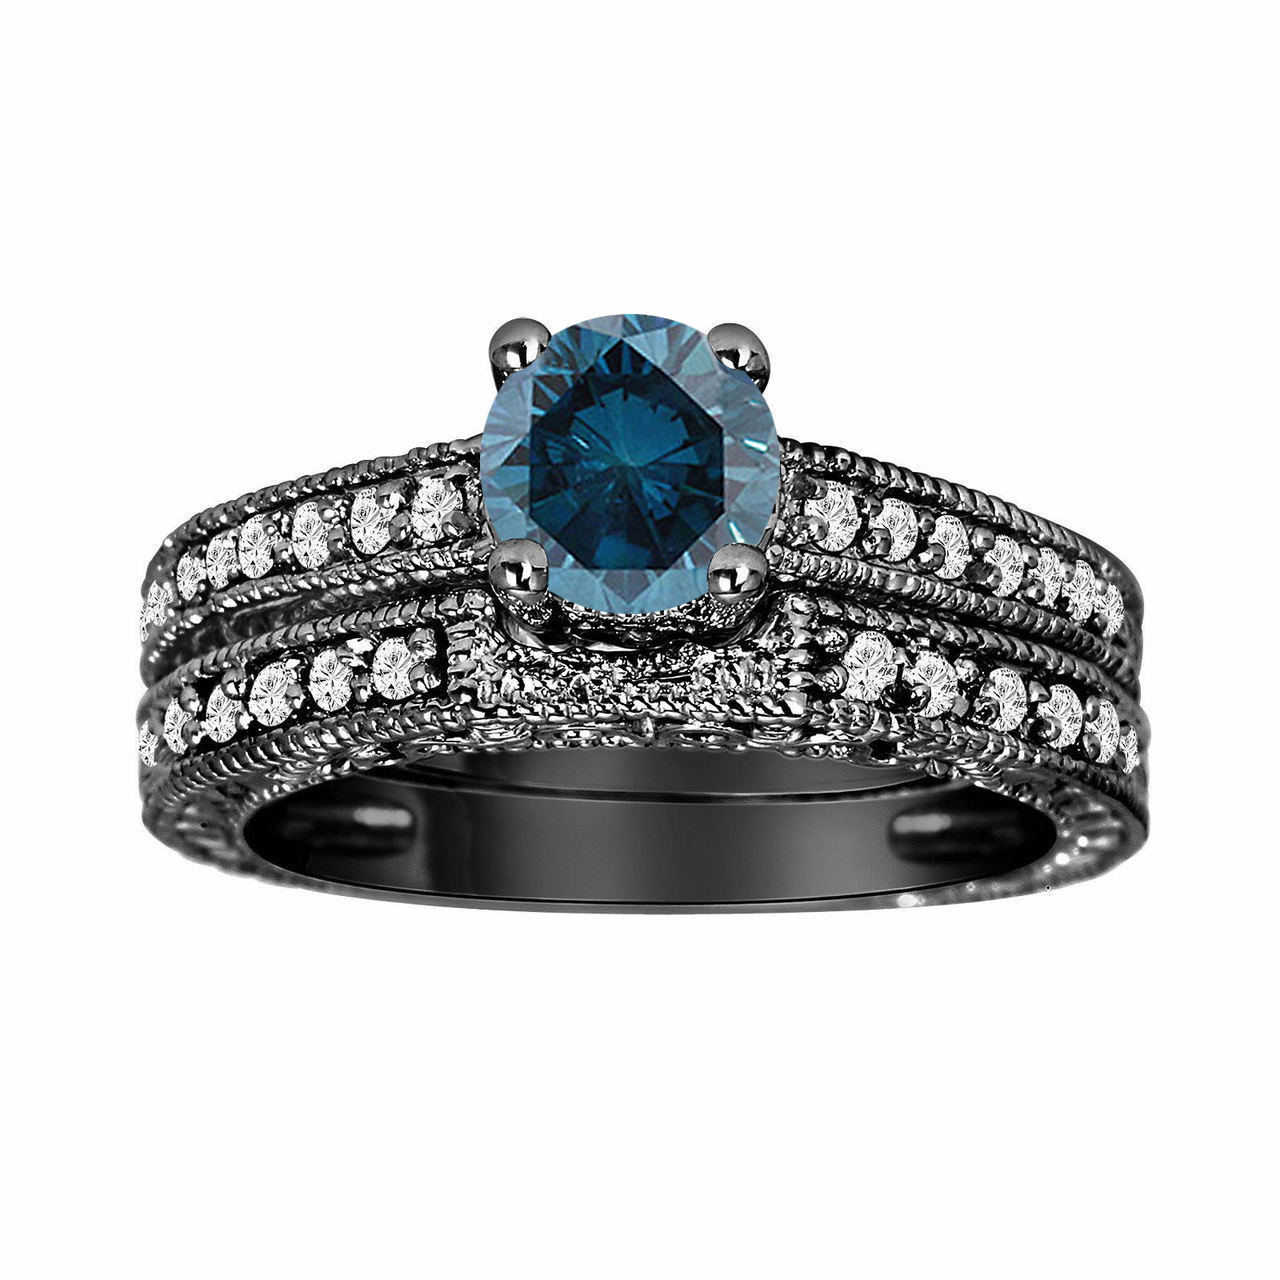 Antique Style 4 2mm Platinum Men S Wedding Band With: Fancy Blue Diamond Engagement Ring And Wedding Band Sets